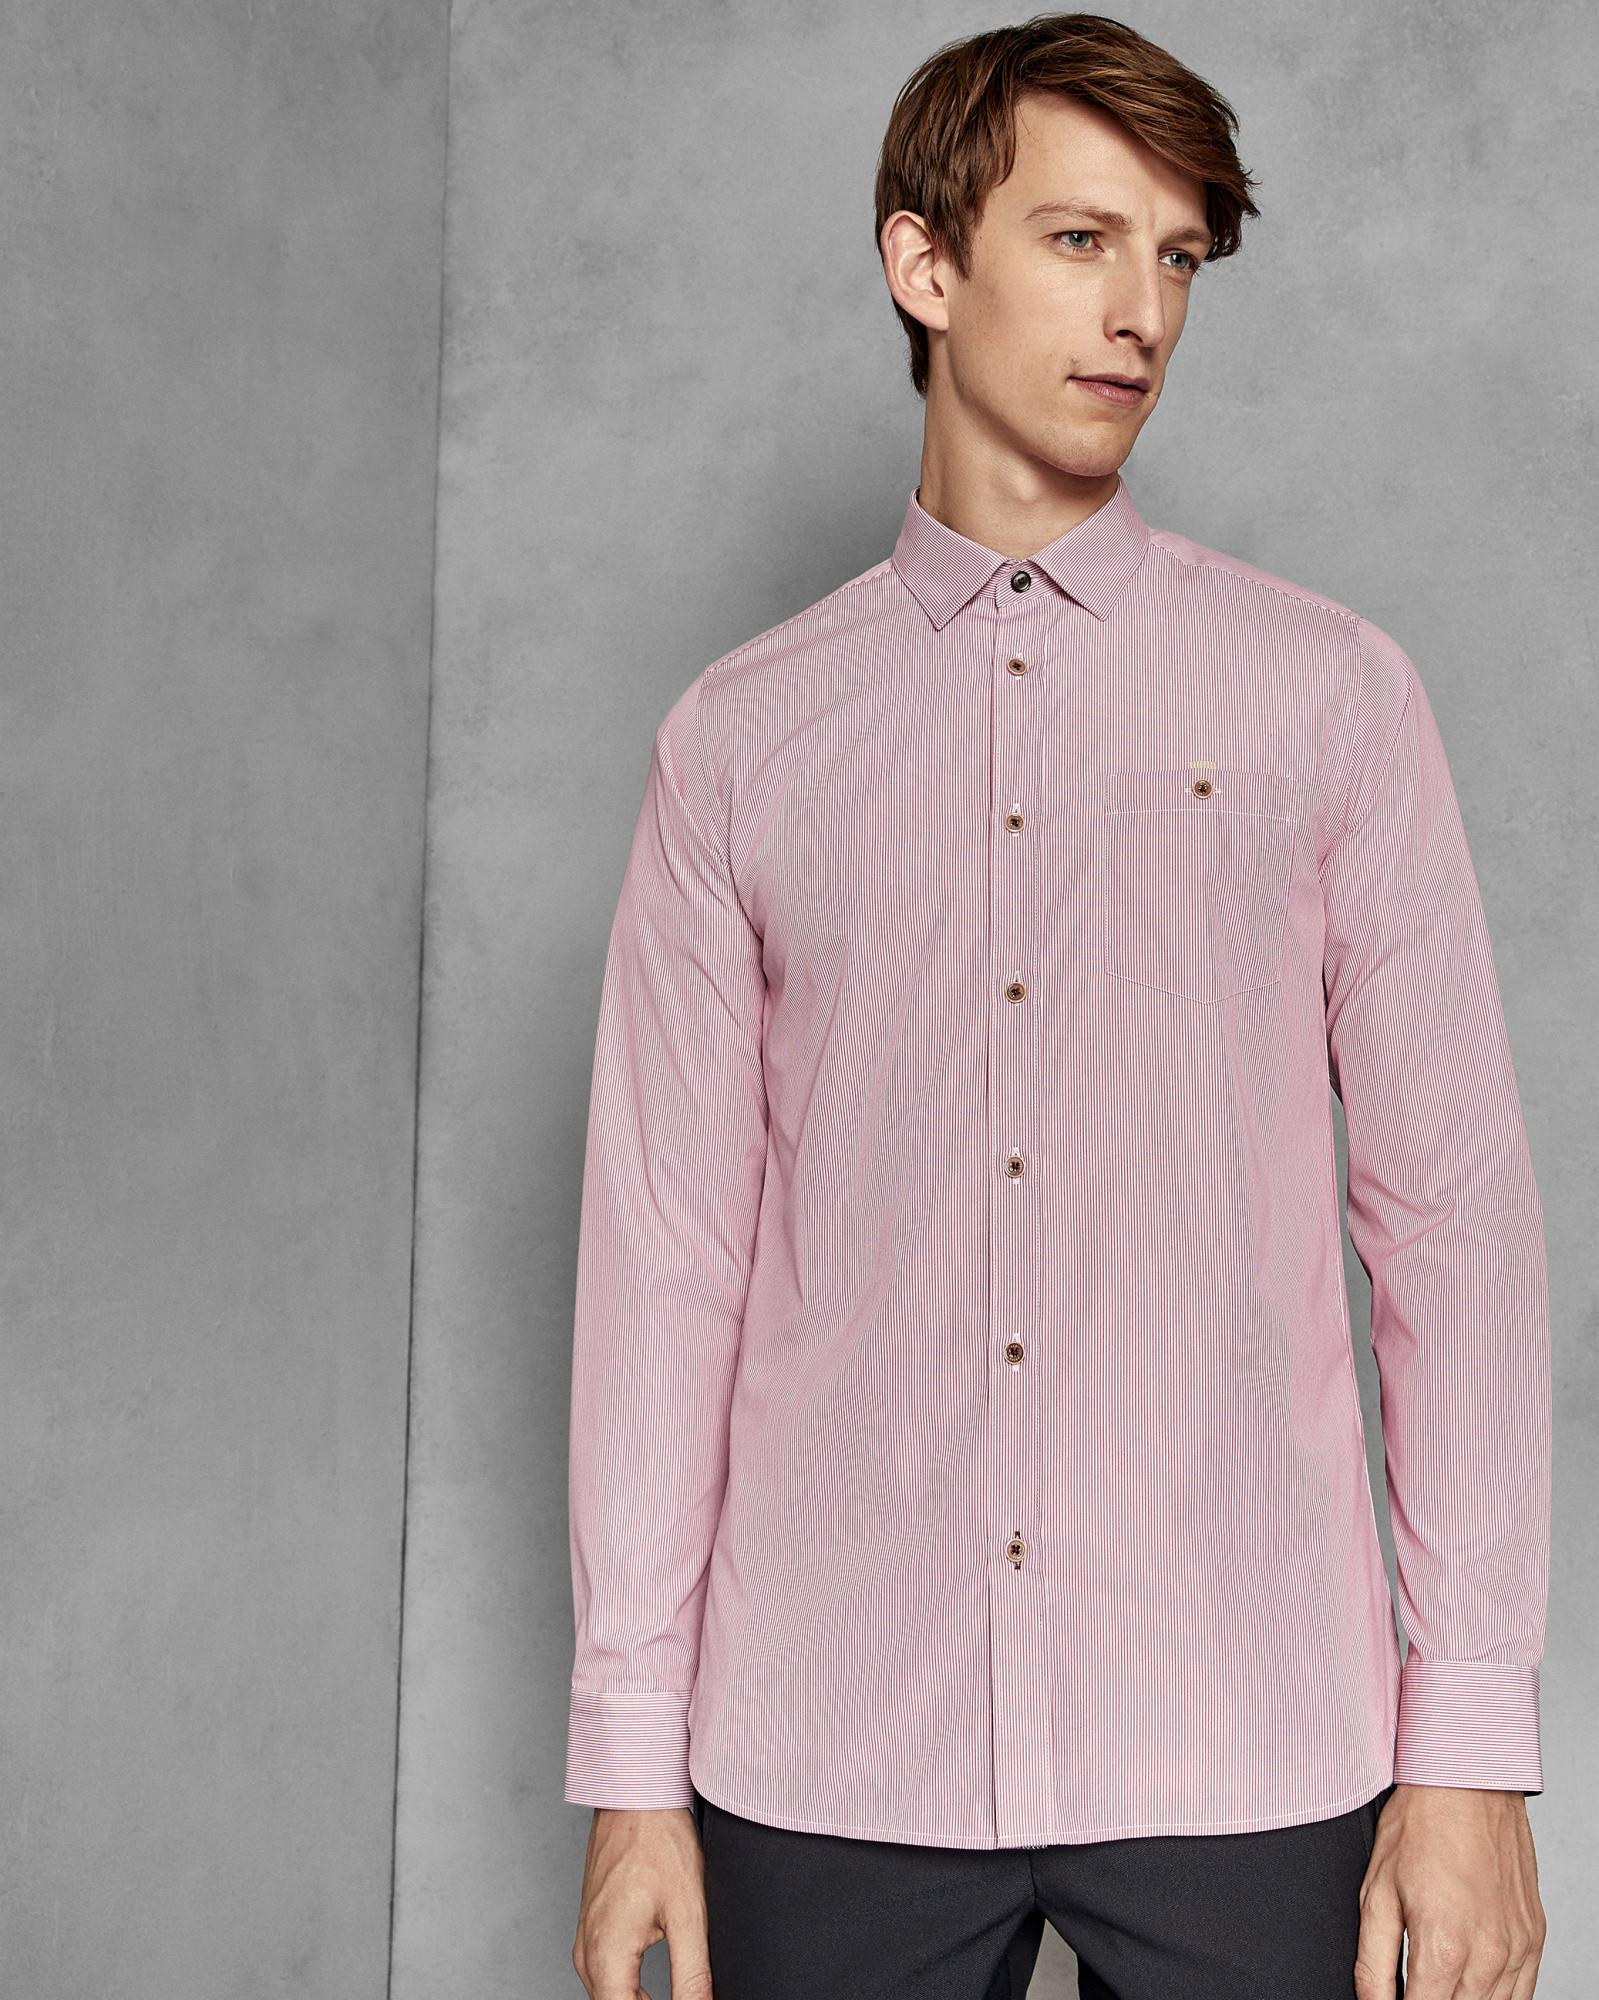 f00678c1dd7b Lyst - Ted Baker Striped Slim Fit Shirt in Pink for Men